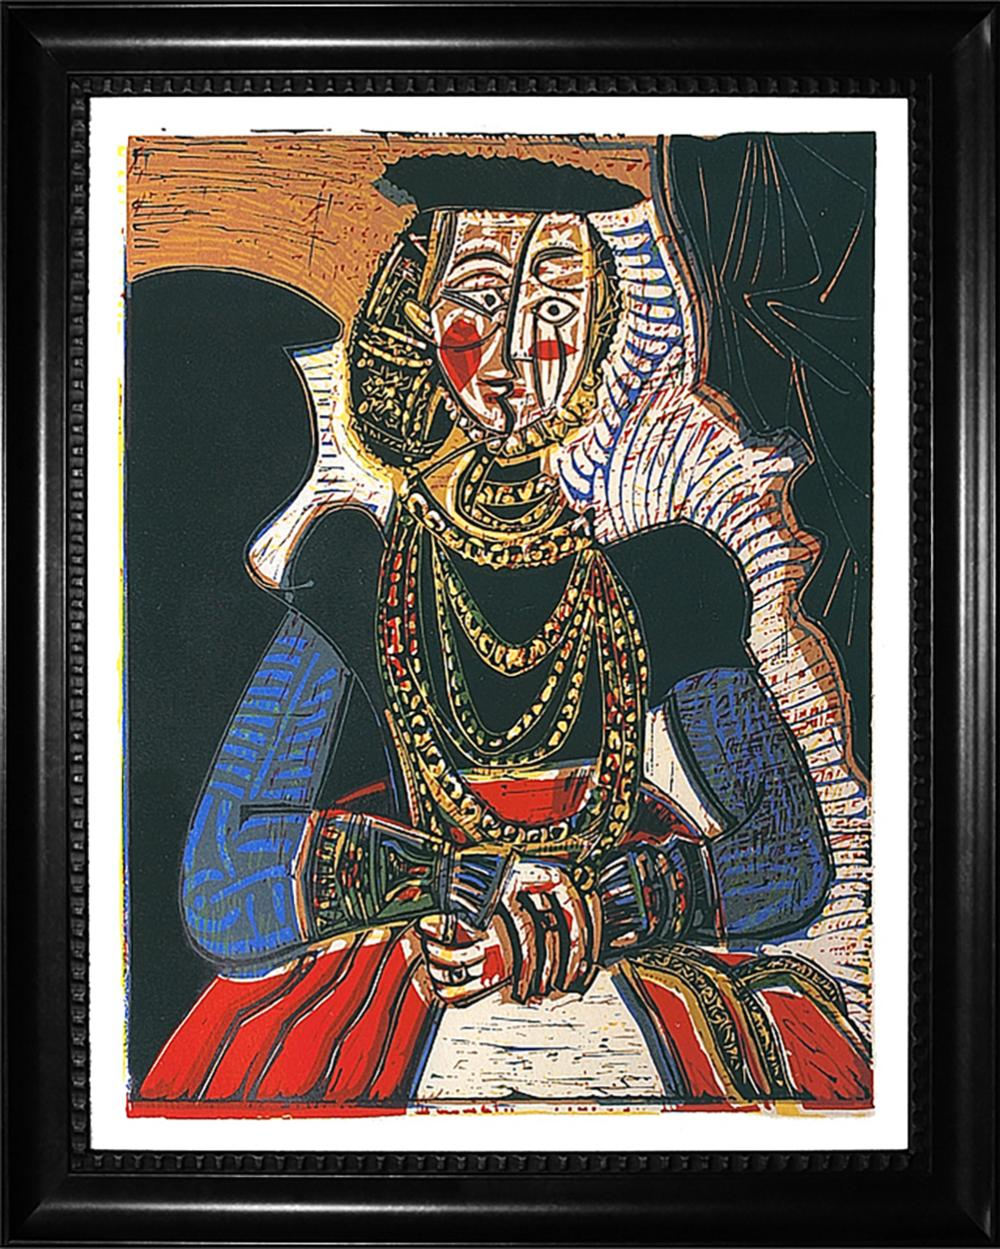 Pablo Picasso Limited Edition embellished canvas